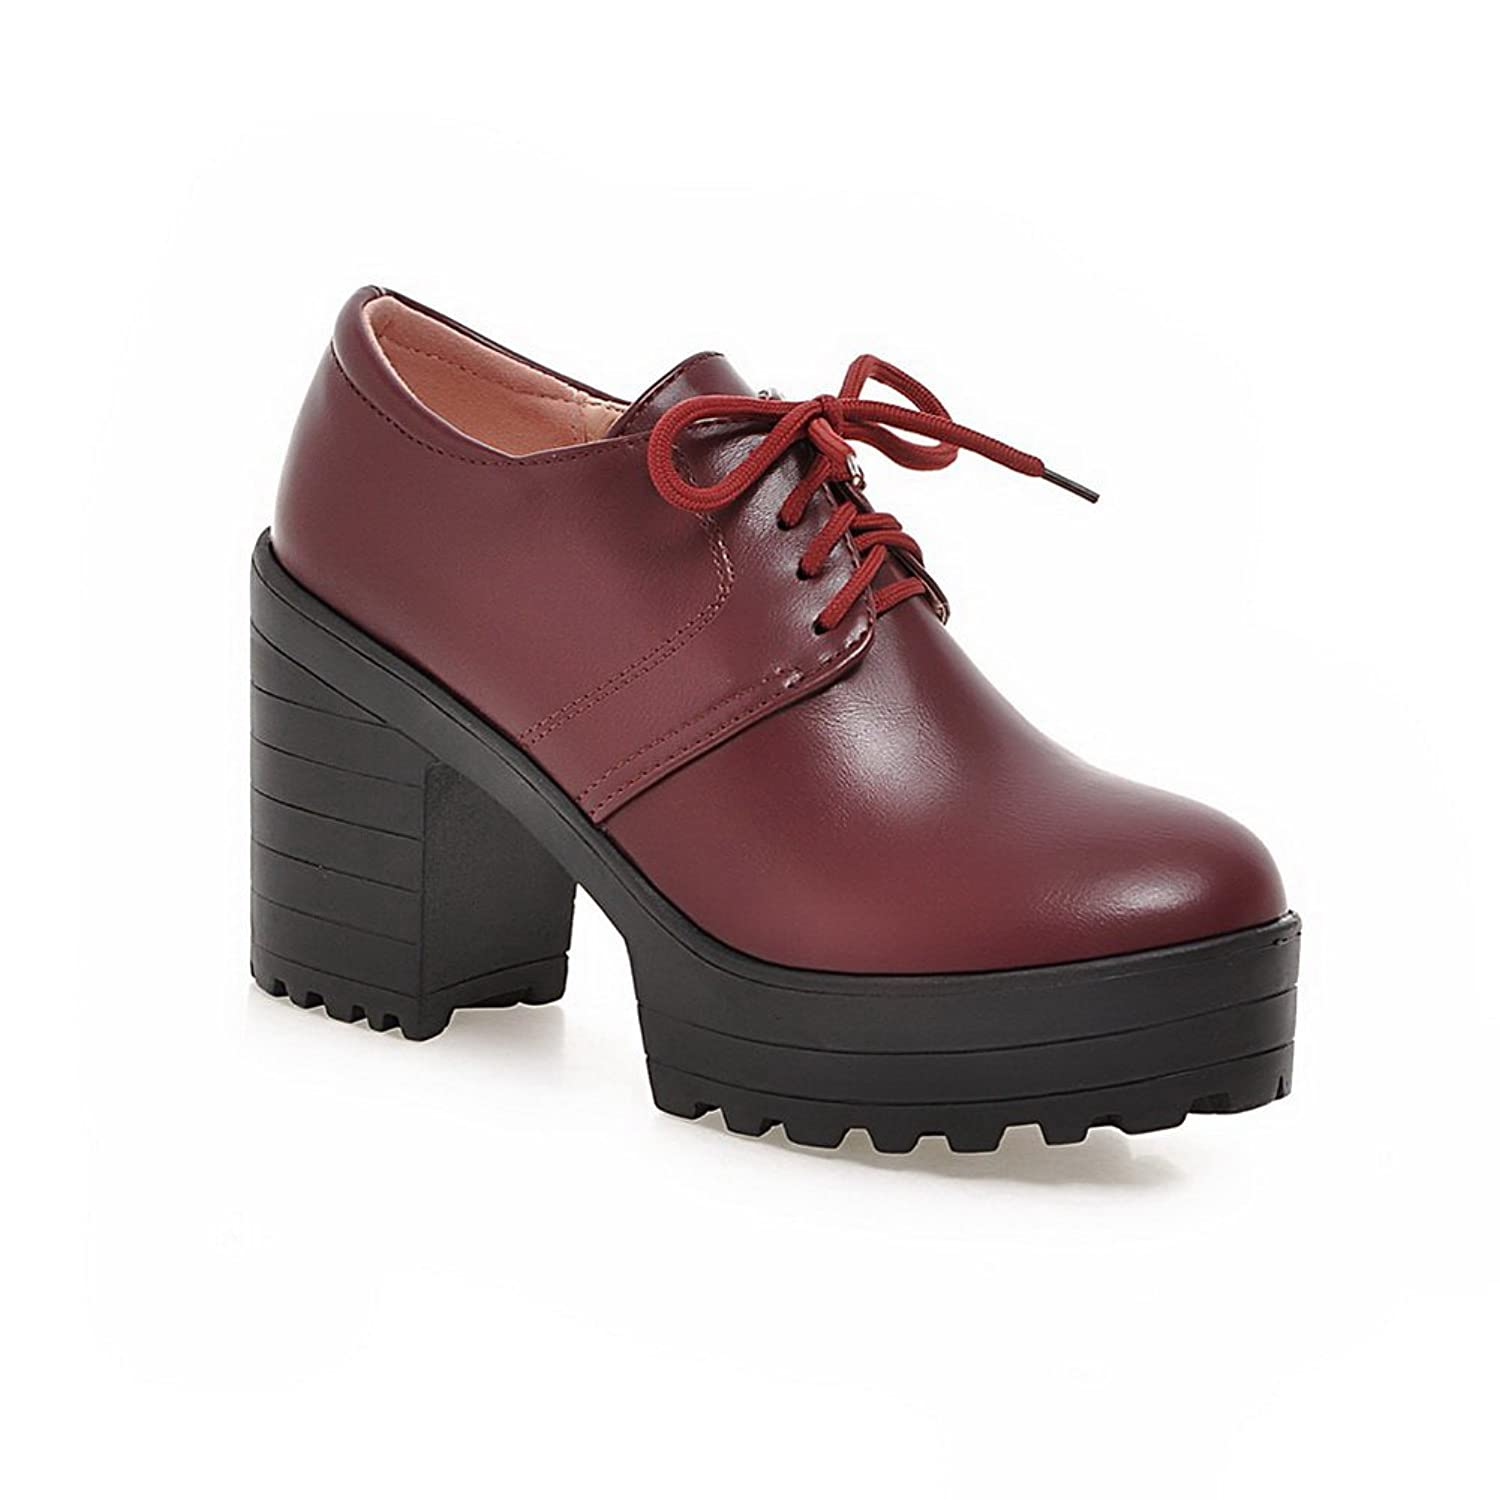 a601ffd2f9f A N Ladies Lace-Up Chunky Heels Platform Red Urethane Oxfords-Shoes - 5.5 B